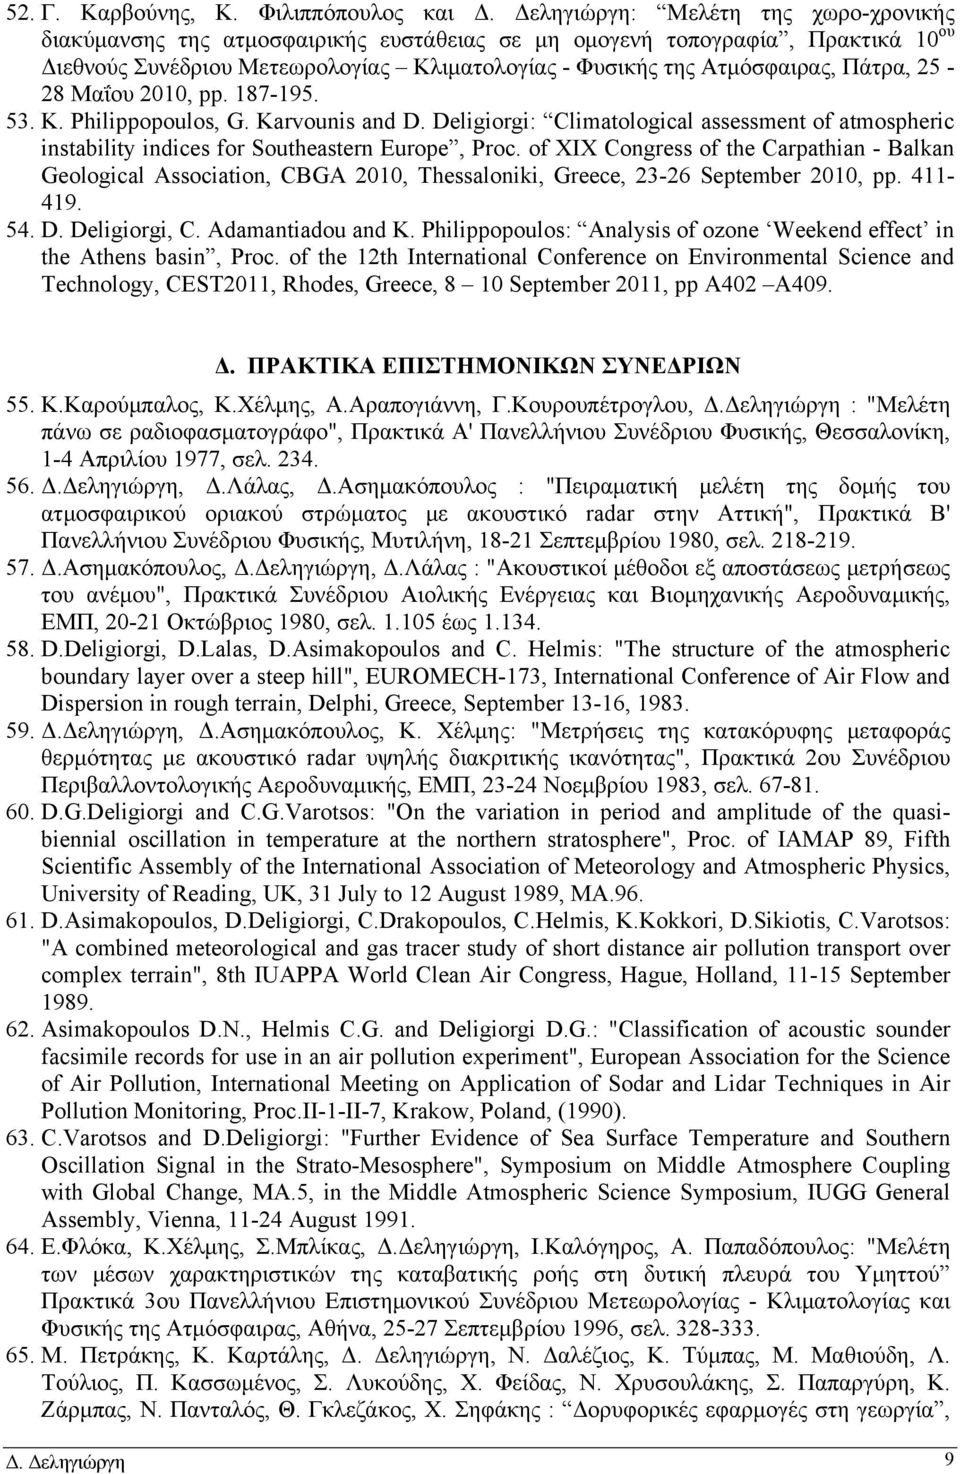 25-28 Μαΐου 2010, pp. 187-195. 53. K. Philippopoulos, G. Karvounis and D. Deligiorgi: Climatological assessment of atmospheric instability indices for Southeastern Europe, Proc.